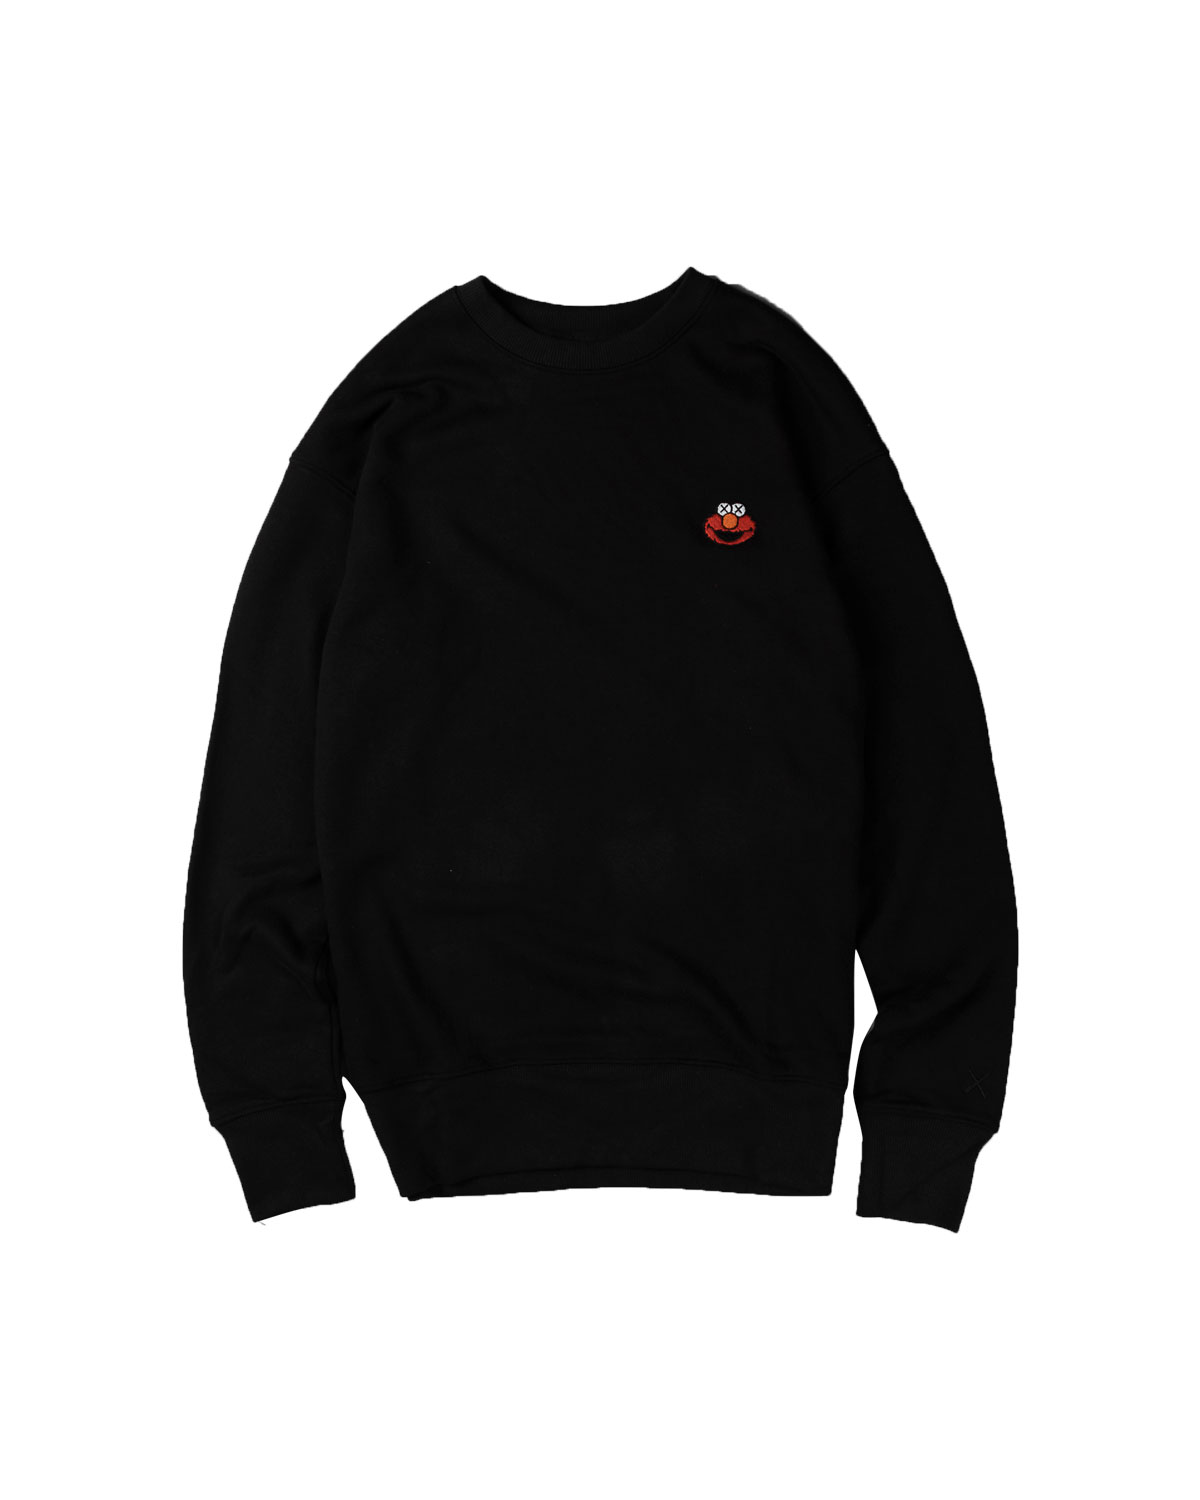 Uniqlo Sweater Kaws Sesame Black - M